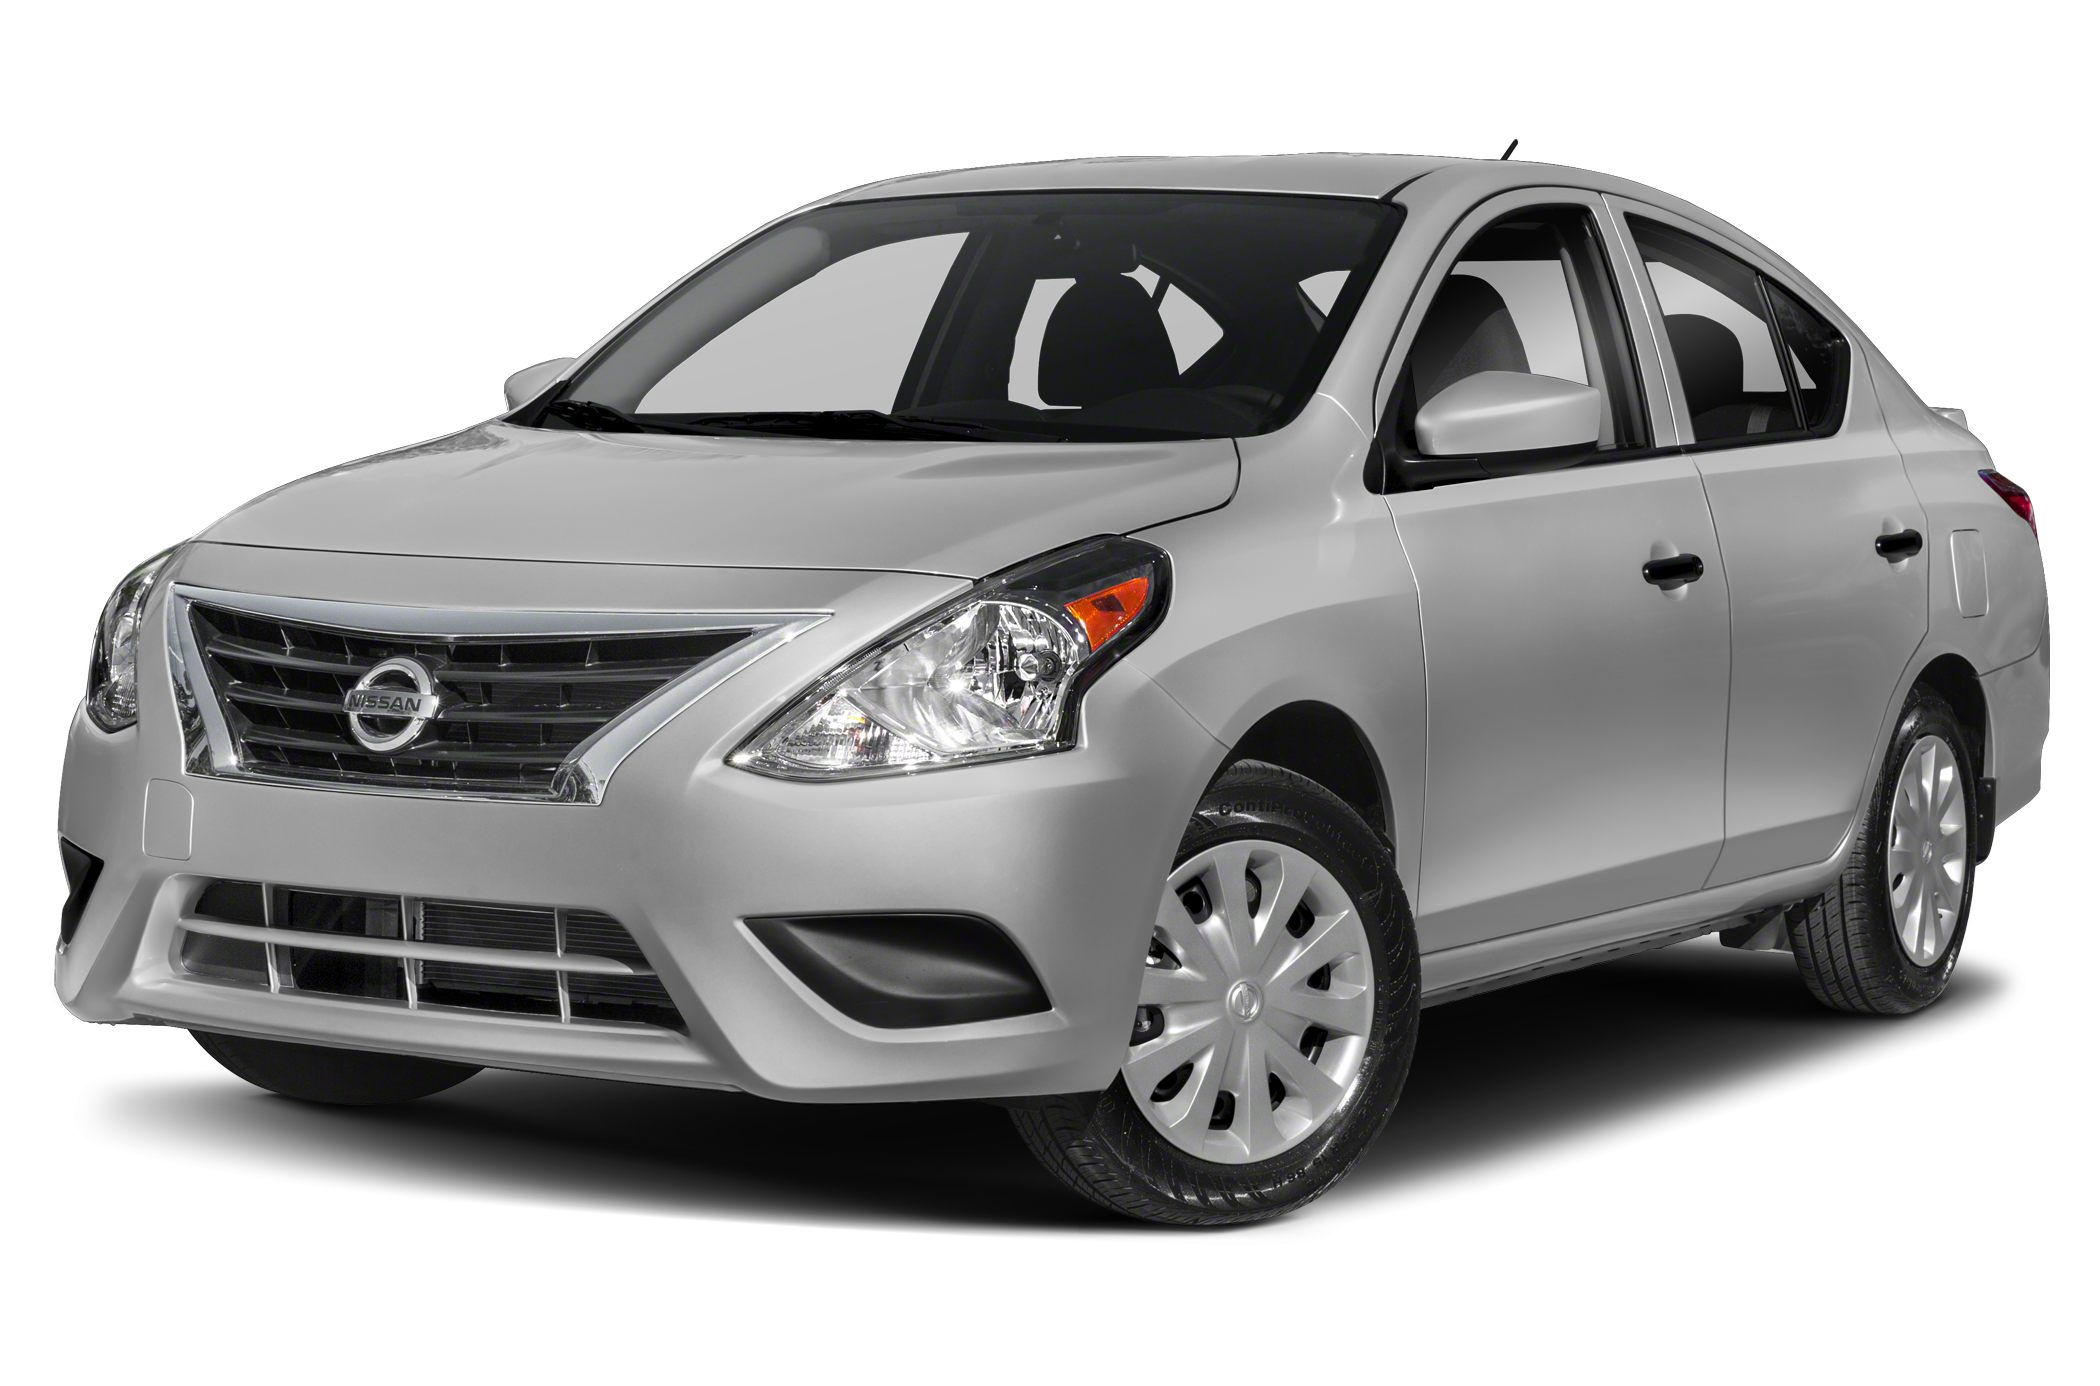 2012 nissan versa first drive photo gallery autoblog. Black Bedroom Furniture Sets. Home Design Ideas